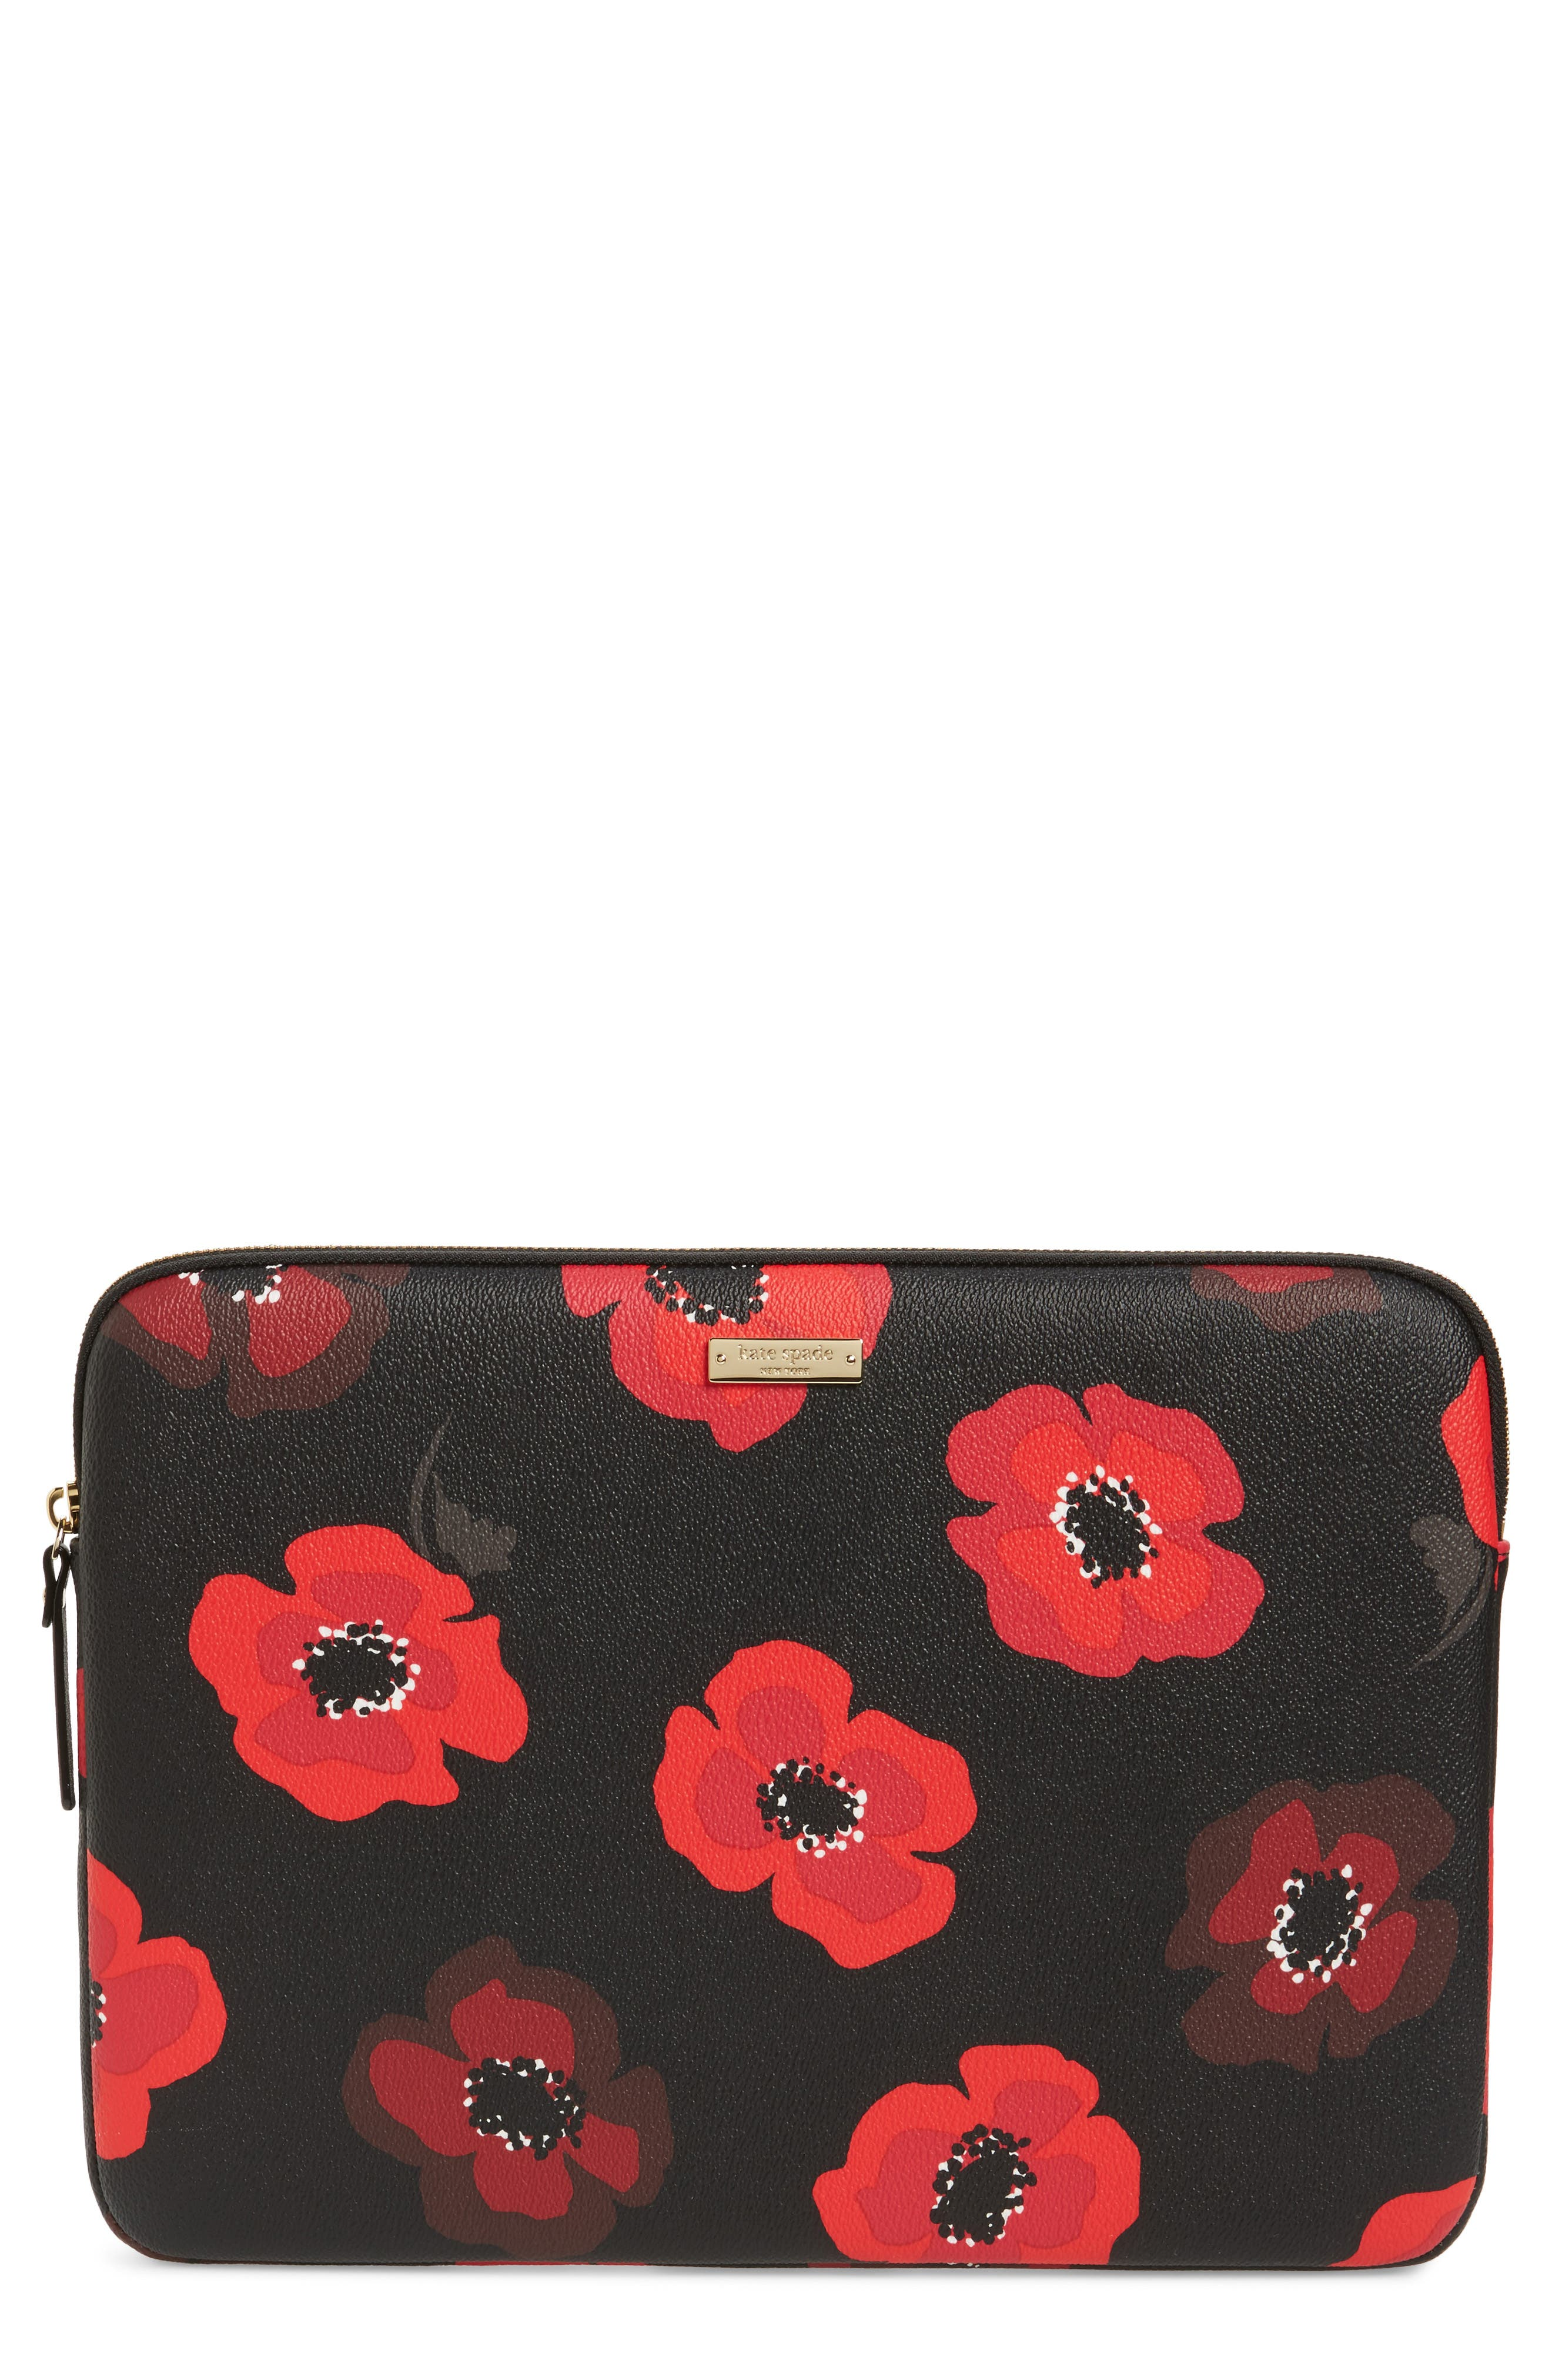 poppy 13-inch laptop sleeve,                         Main,                         color, 002